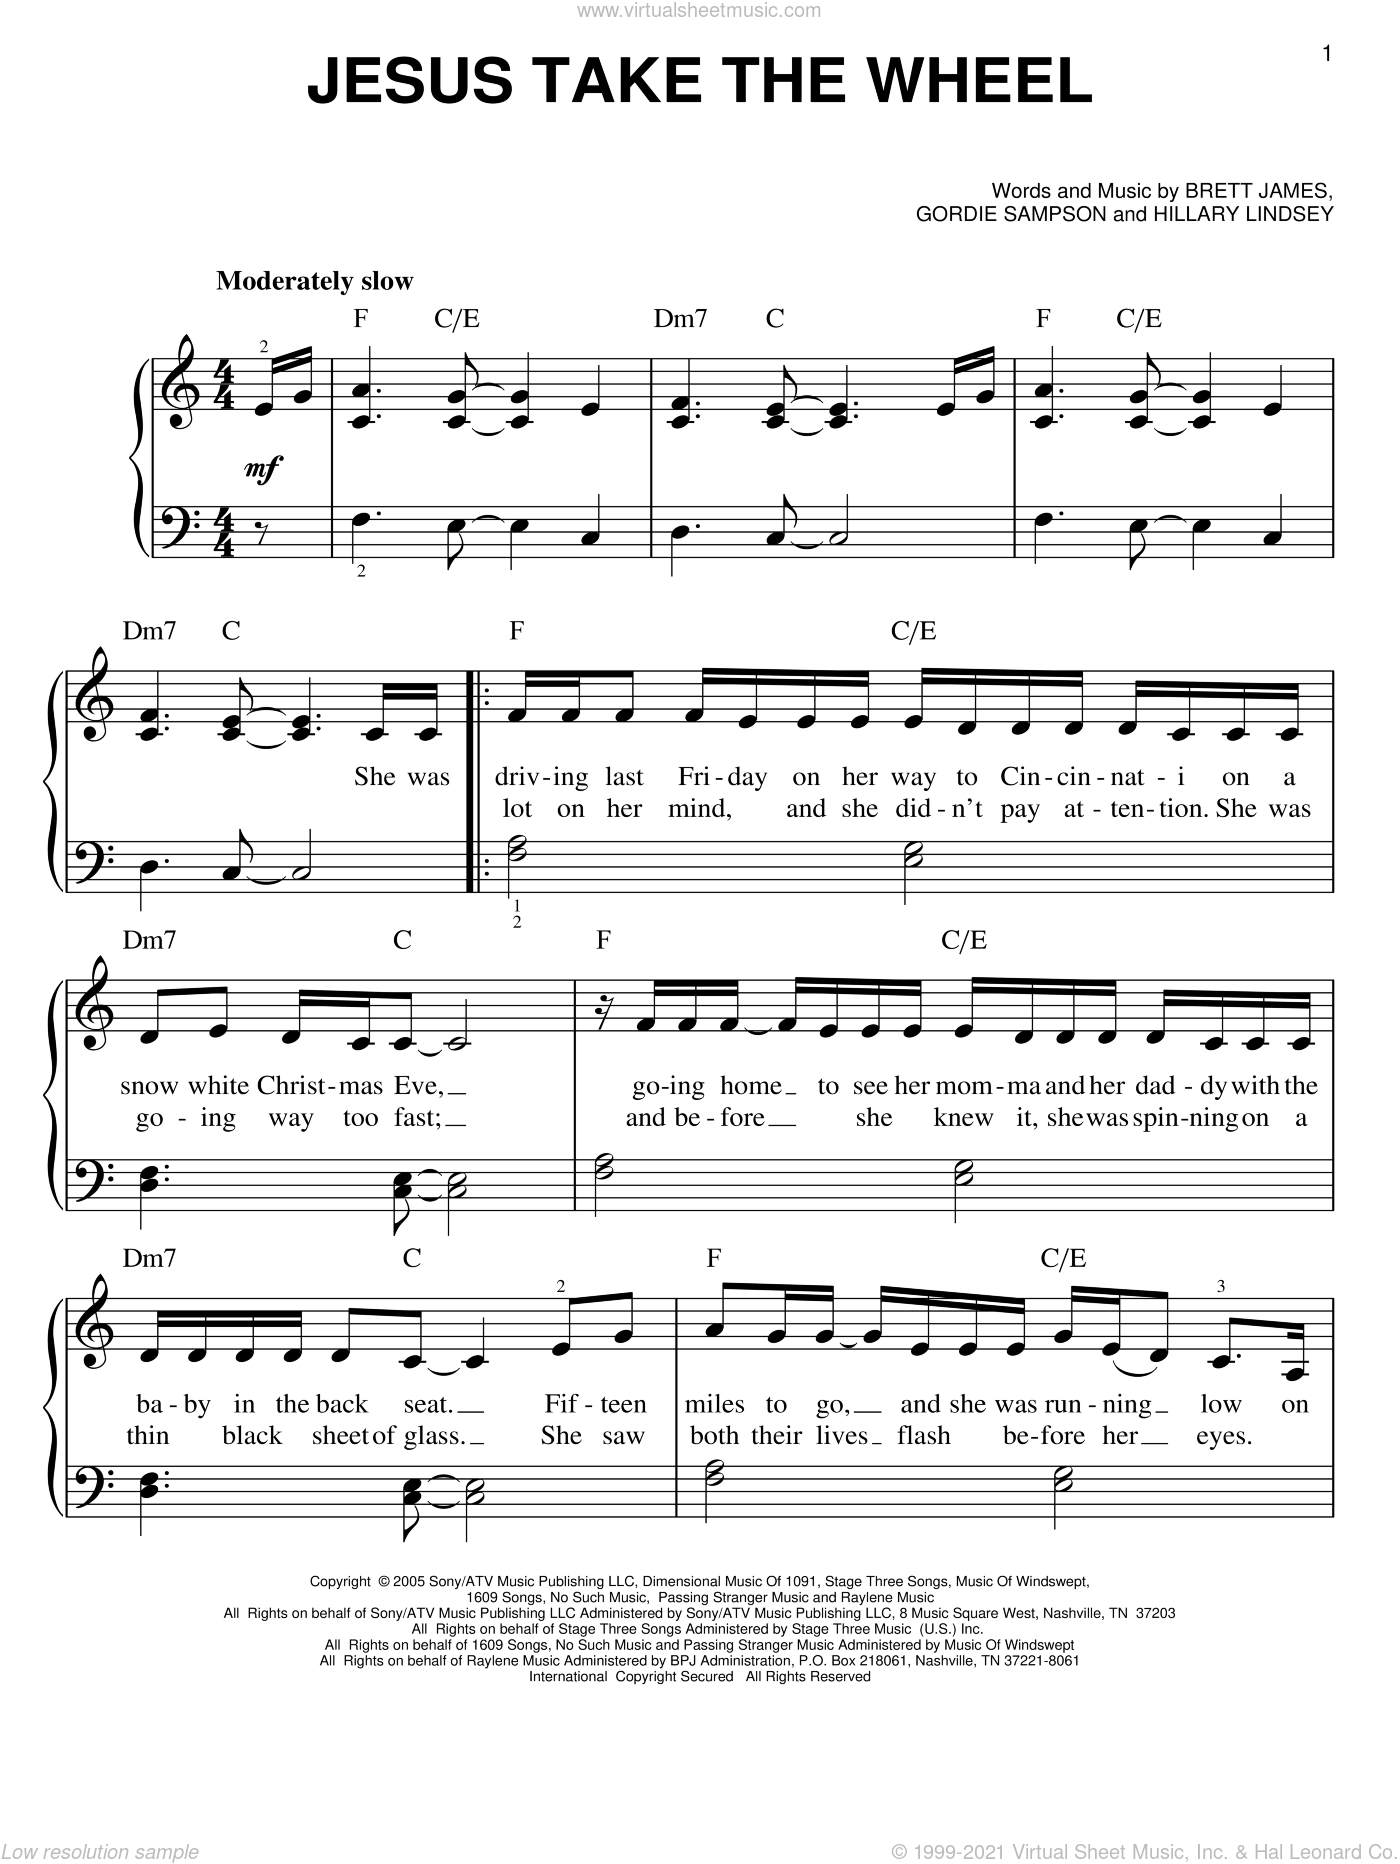 Jesus Take The Wheel sheet music for piano solo by Hillary Lindsey, Carrie Underwood, Brett James and Gordie Sampson. Score Image Preview.